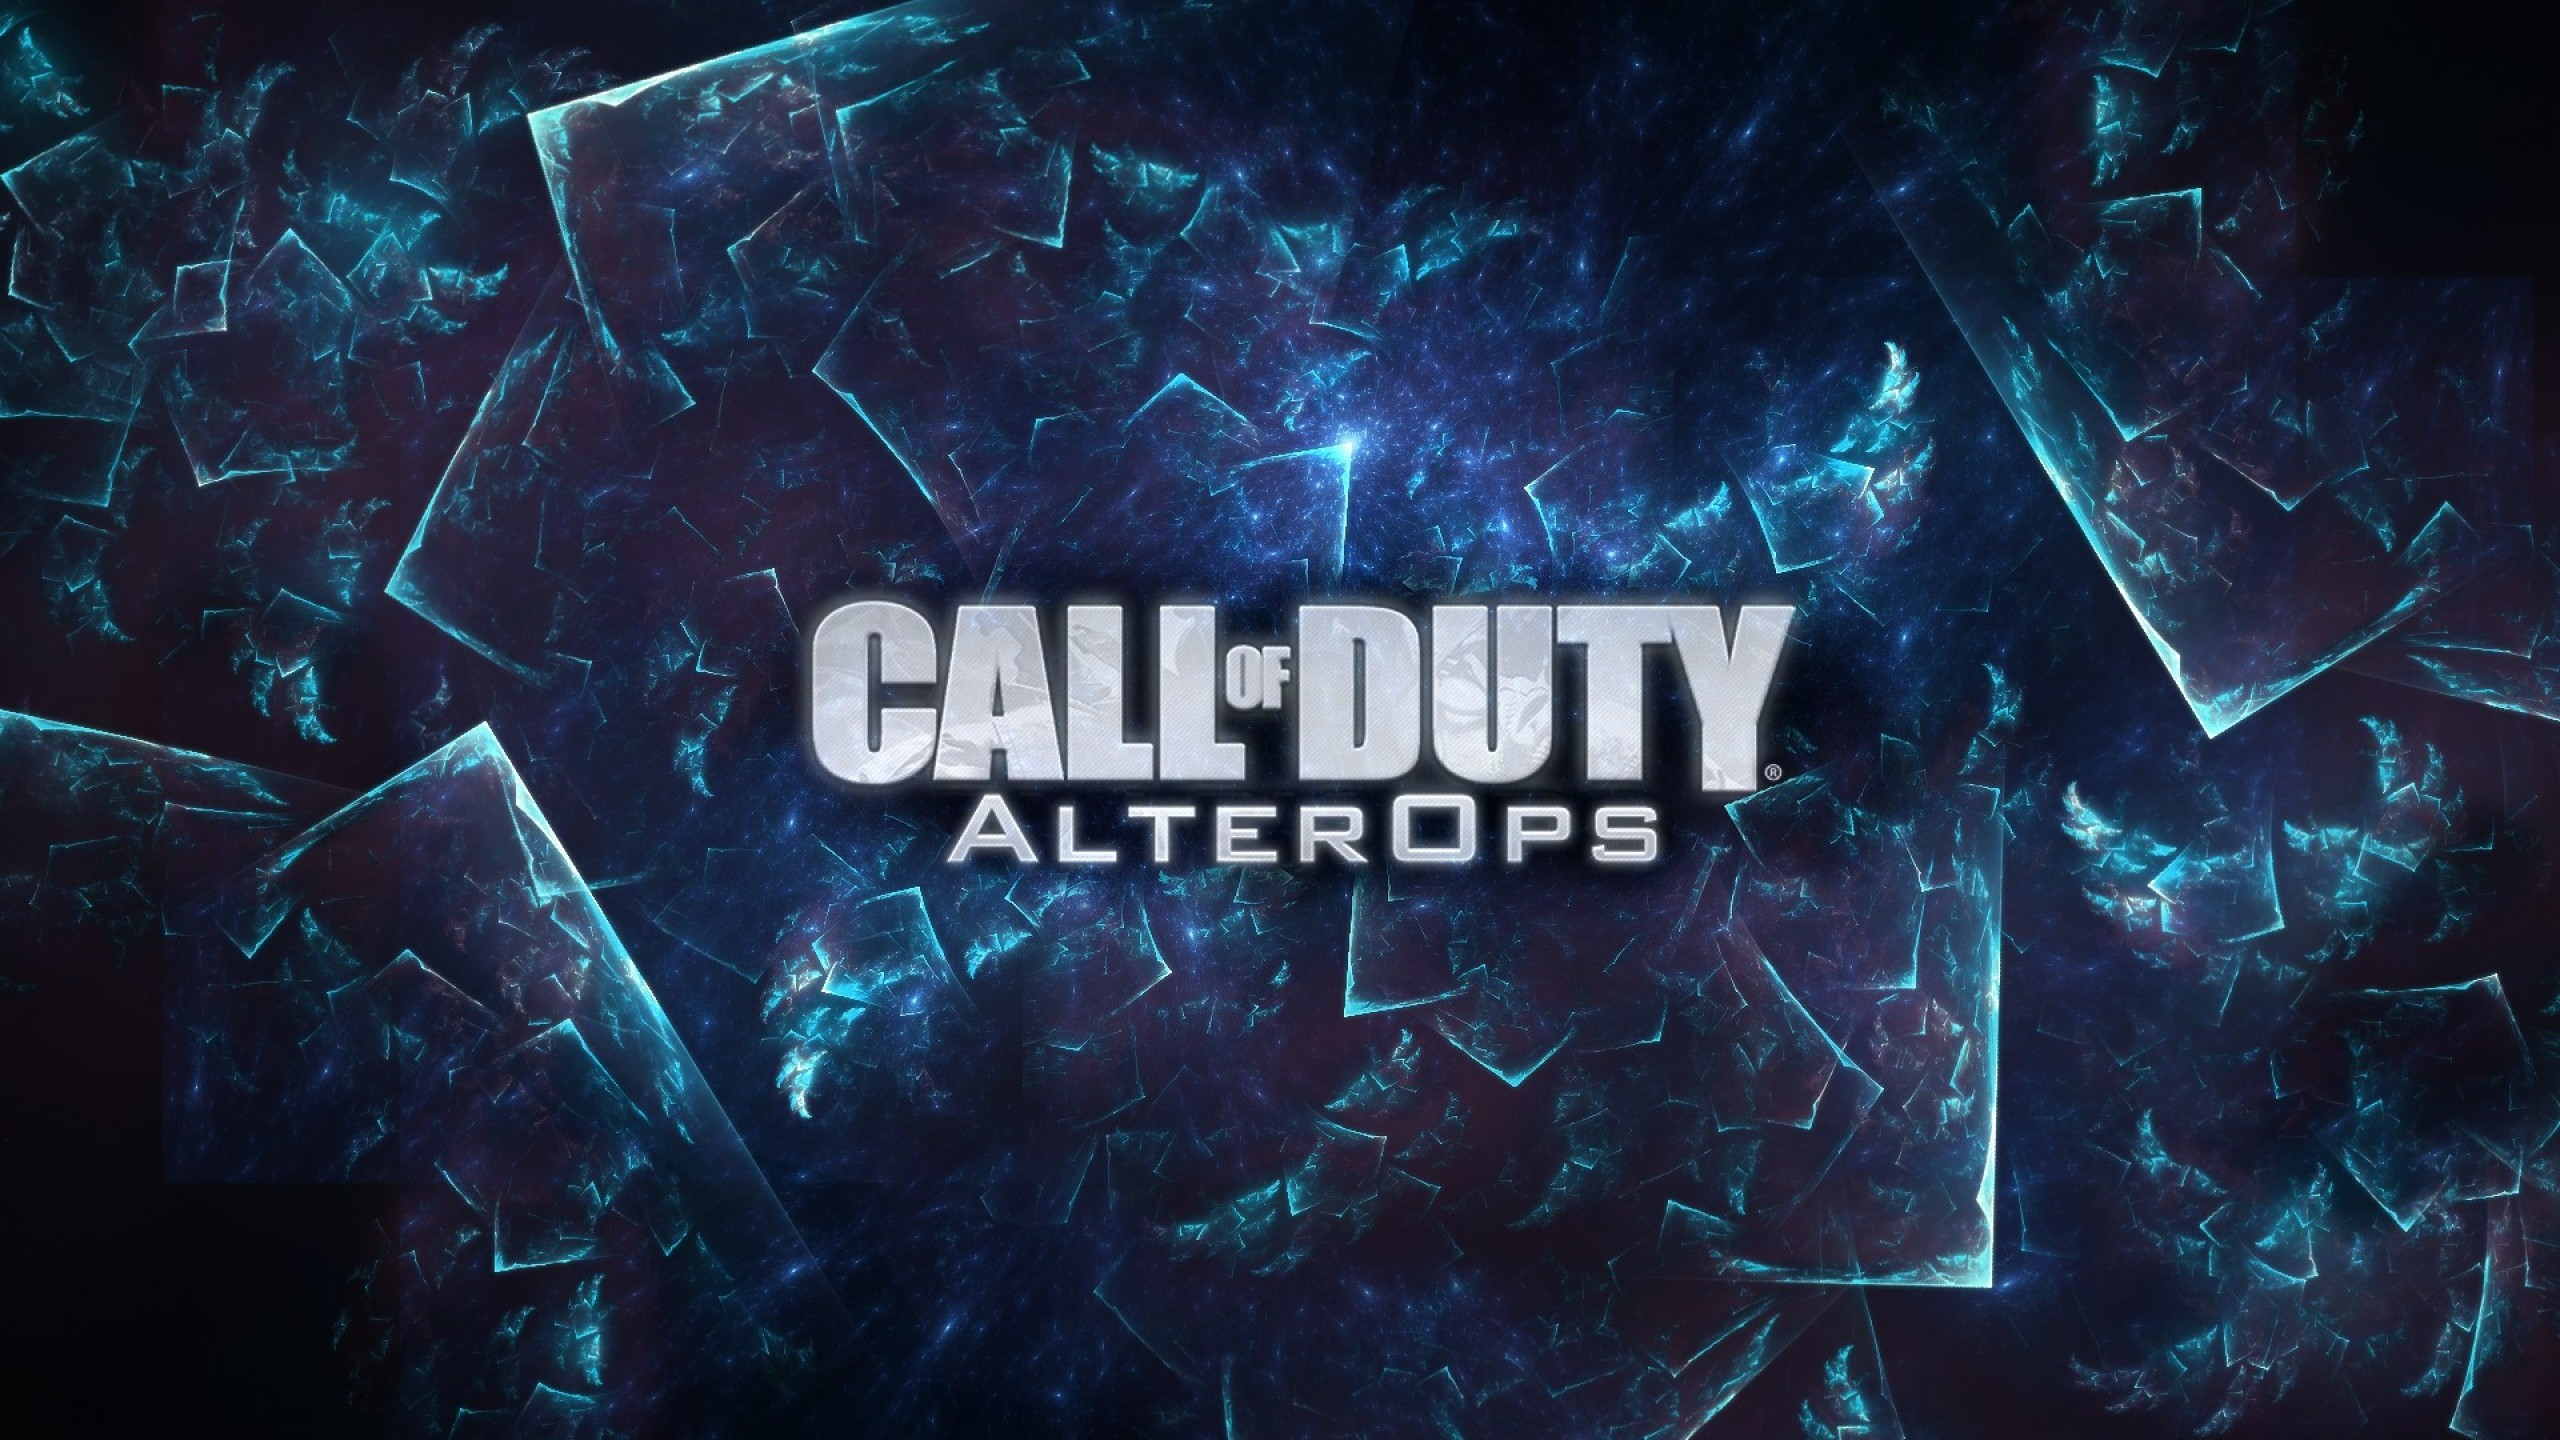 Wallpaper call of duty alter ops, name, game, font, background,